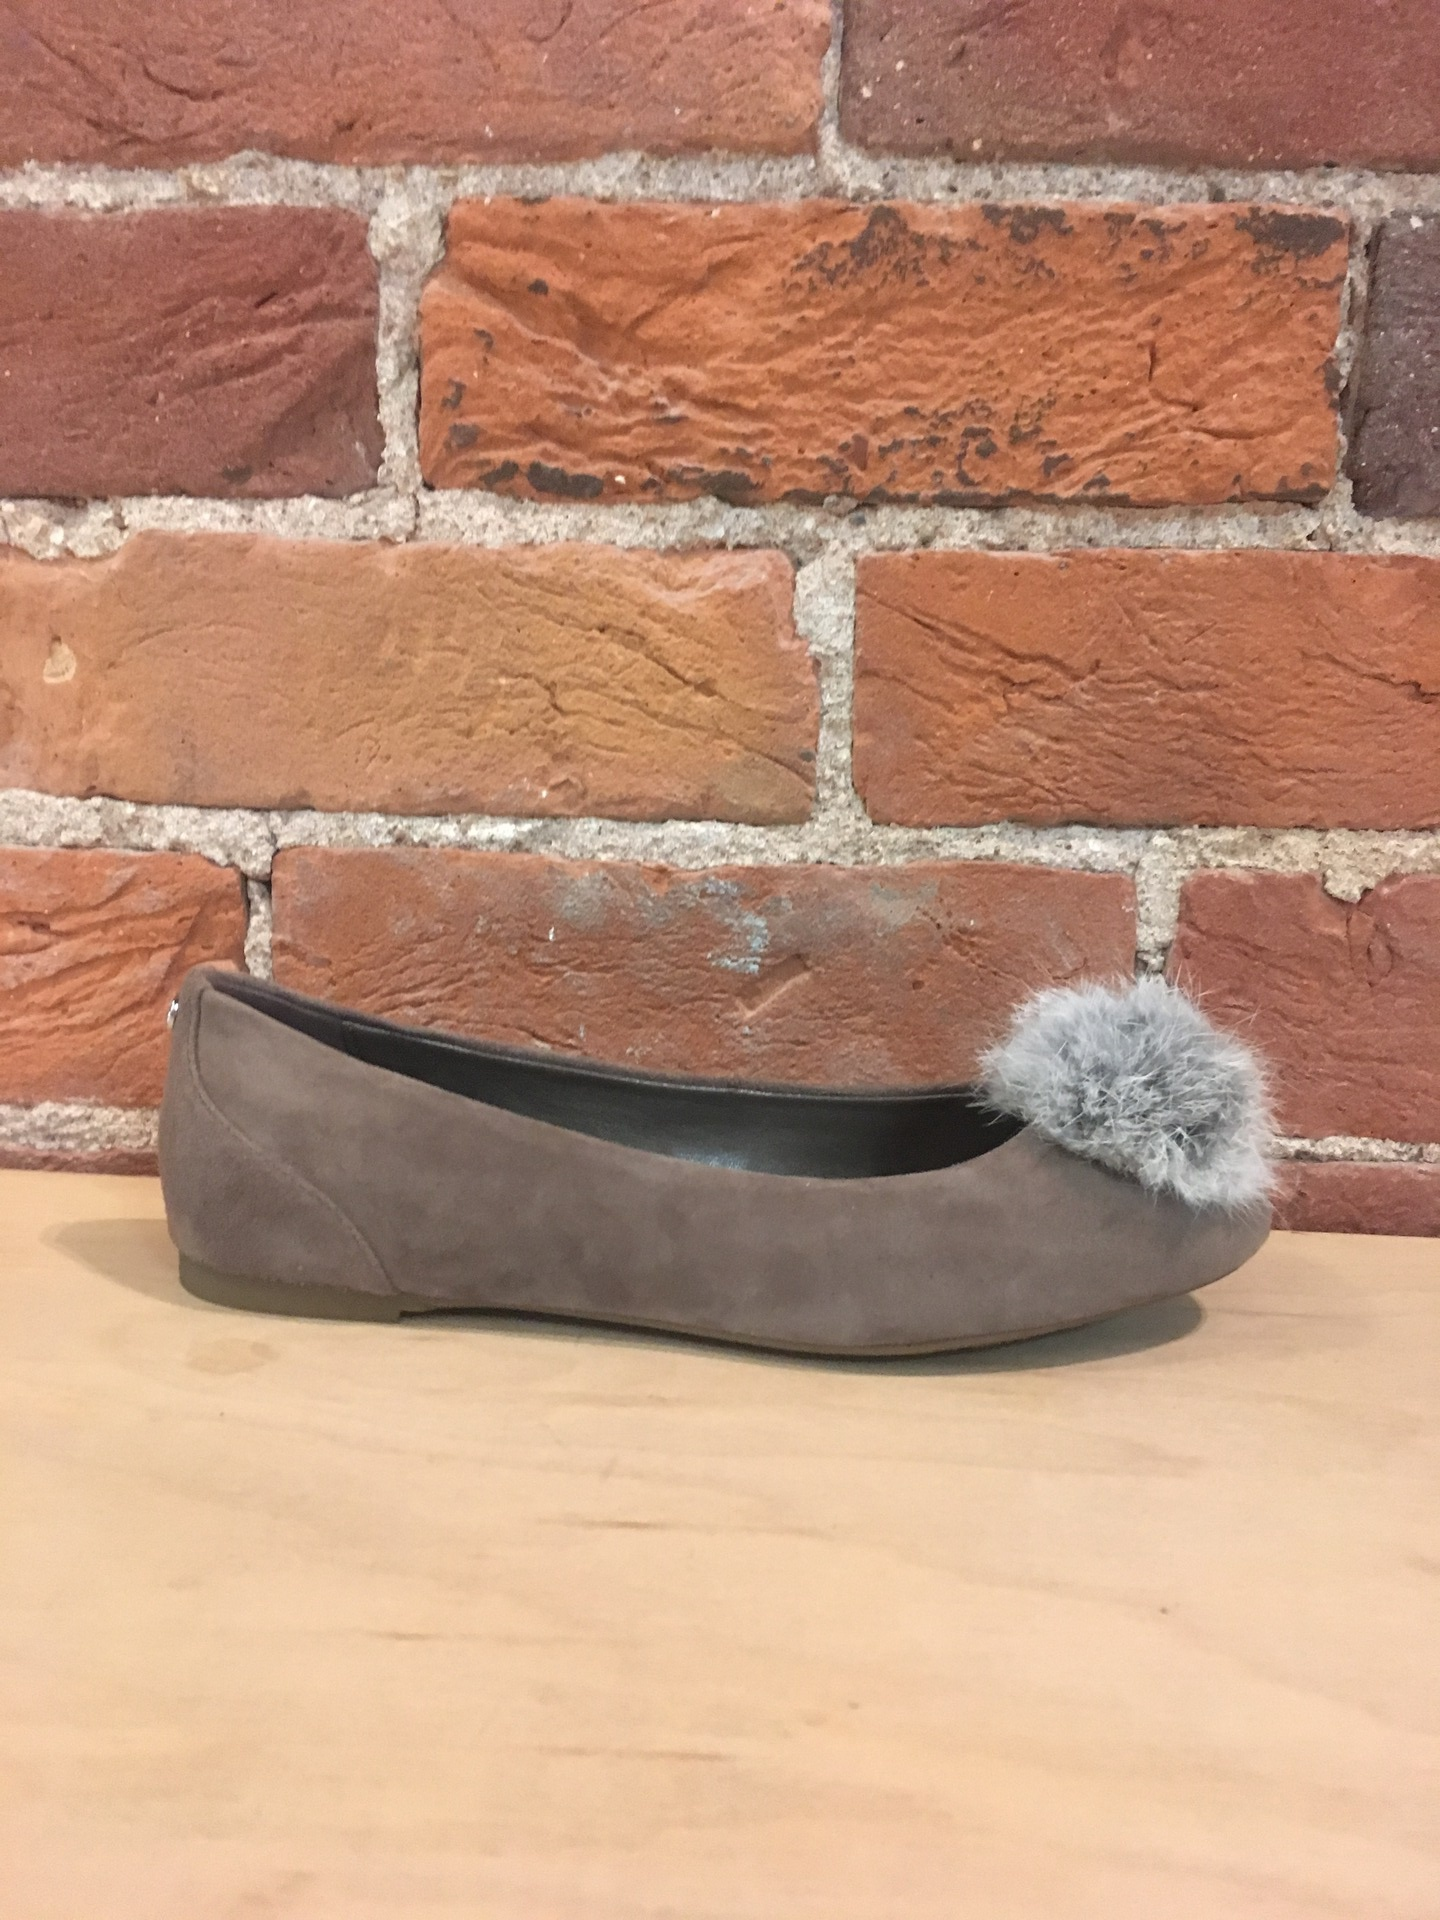 MICHAEL KORS - REMI BALLET IN TAUPE/GREY